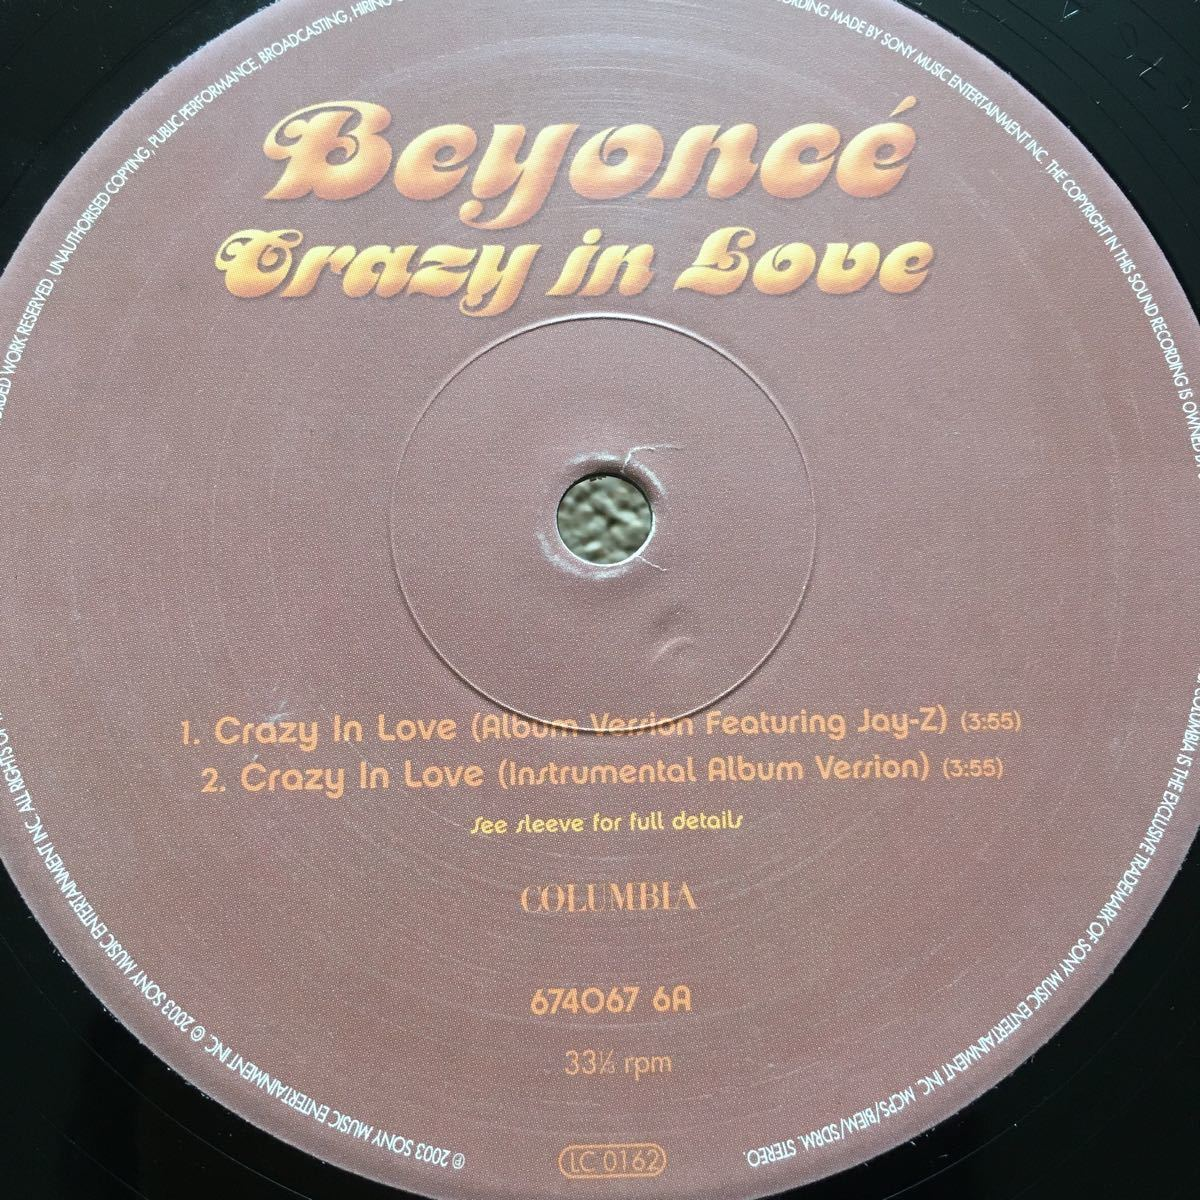 Beyonce / Crazy In Love remix / Album Ver. F. Jay-Z / Chi-Lites - Are You My Woman / 12 レコード_画像3